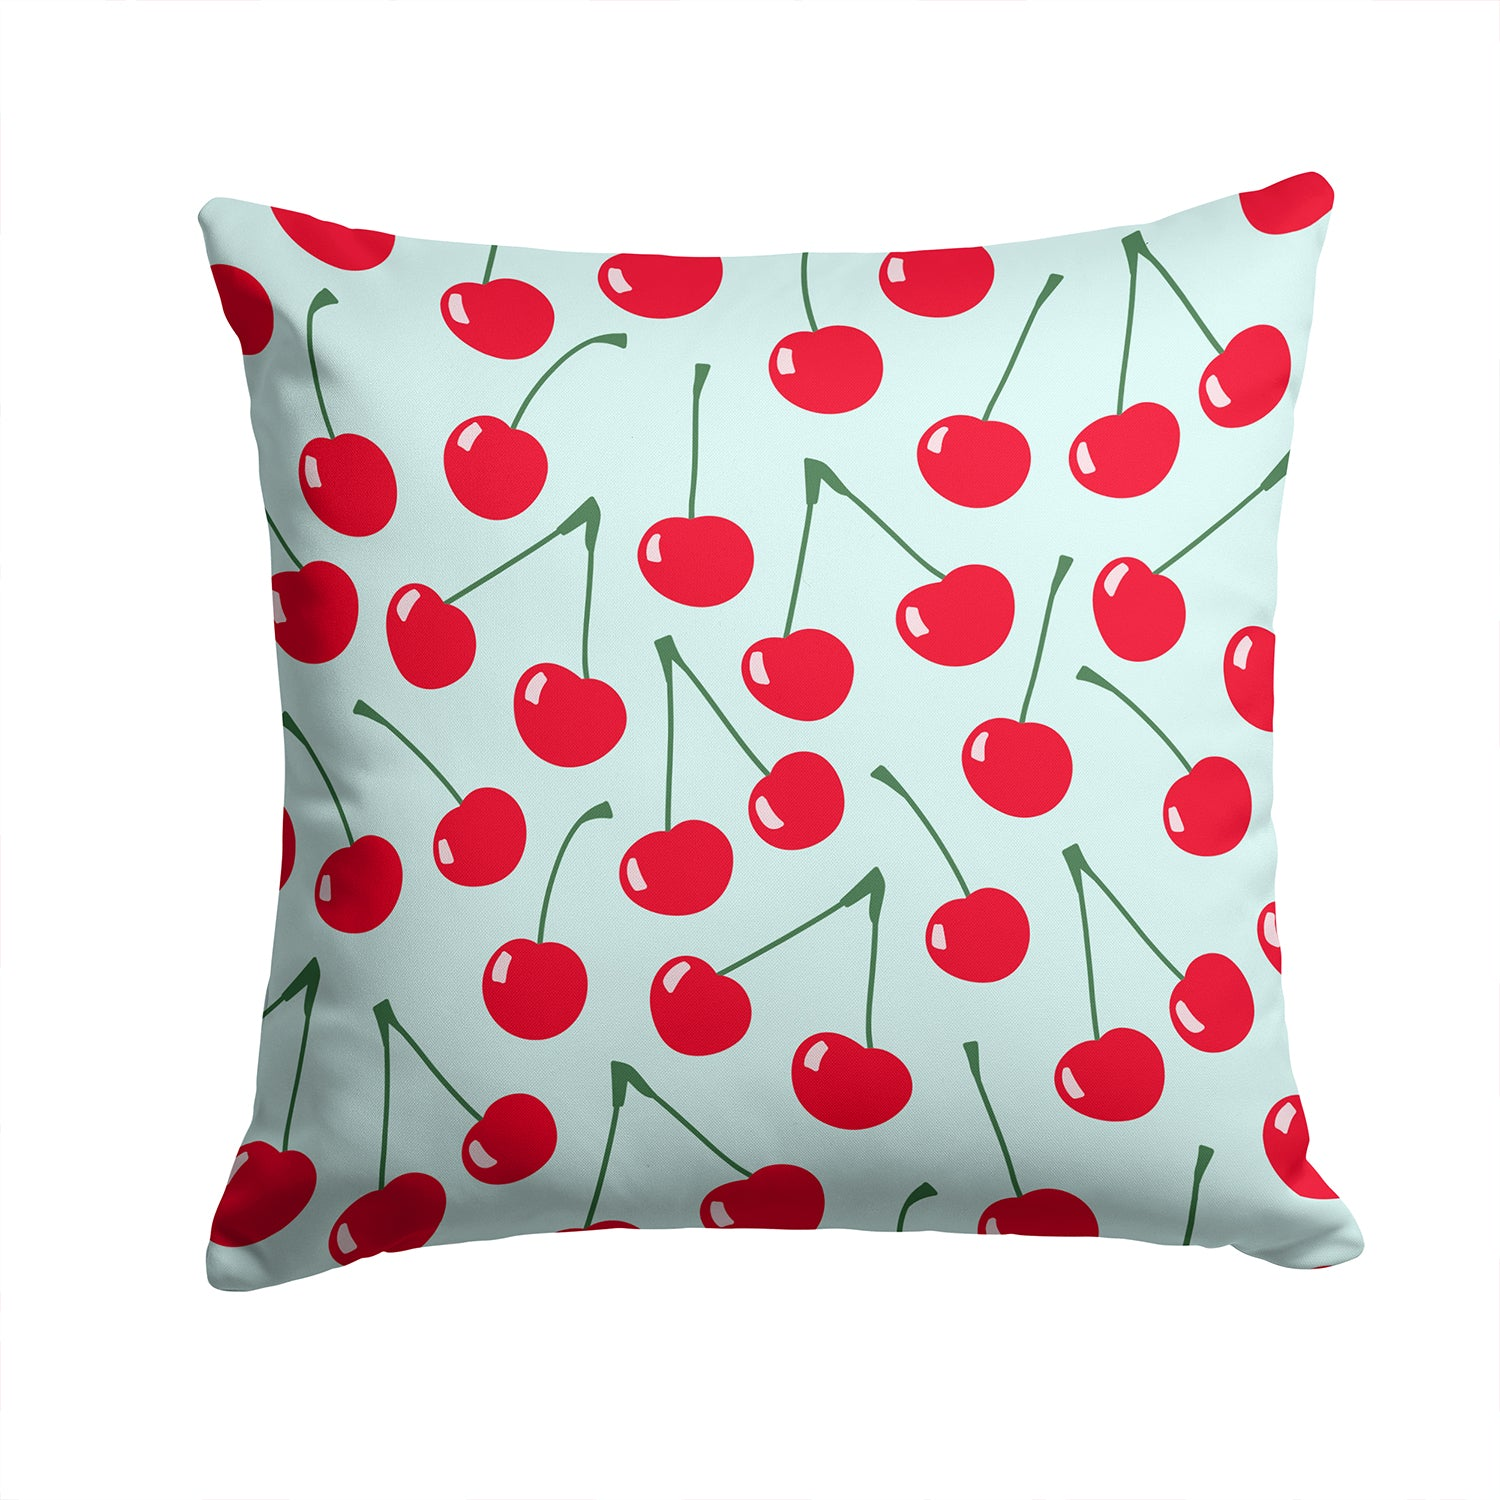 Cherries on Blue Fabric Decorative Pillow BB5148PW1414 by Caroline's Treasures